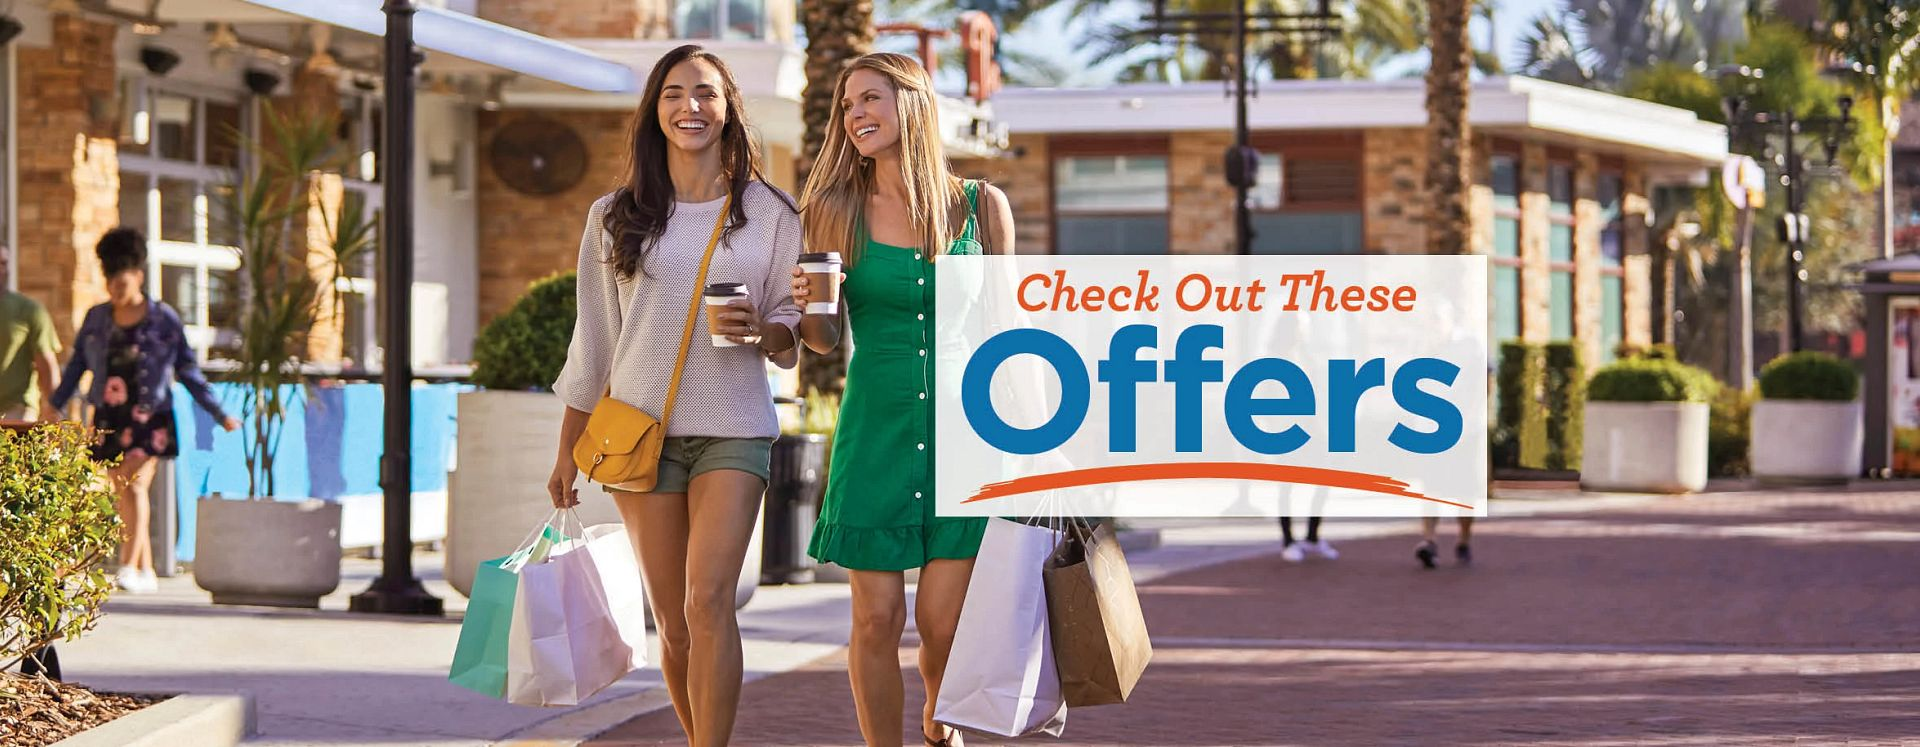 Women shopping to promote Visit Orlando Deals